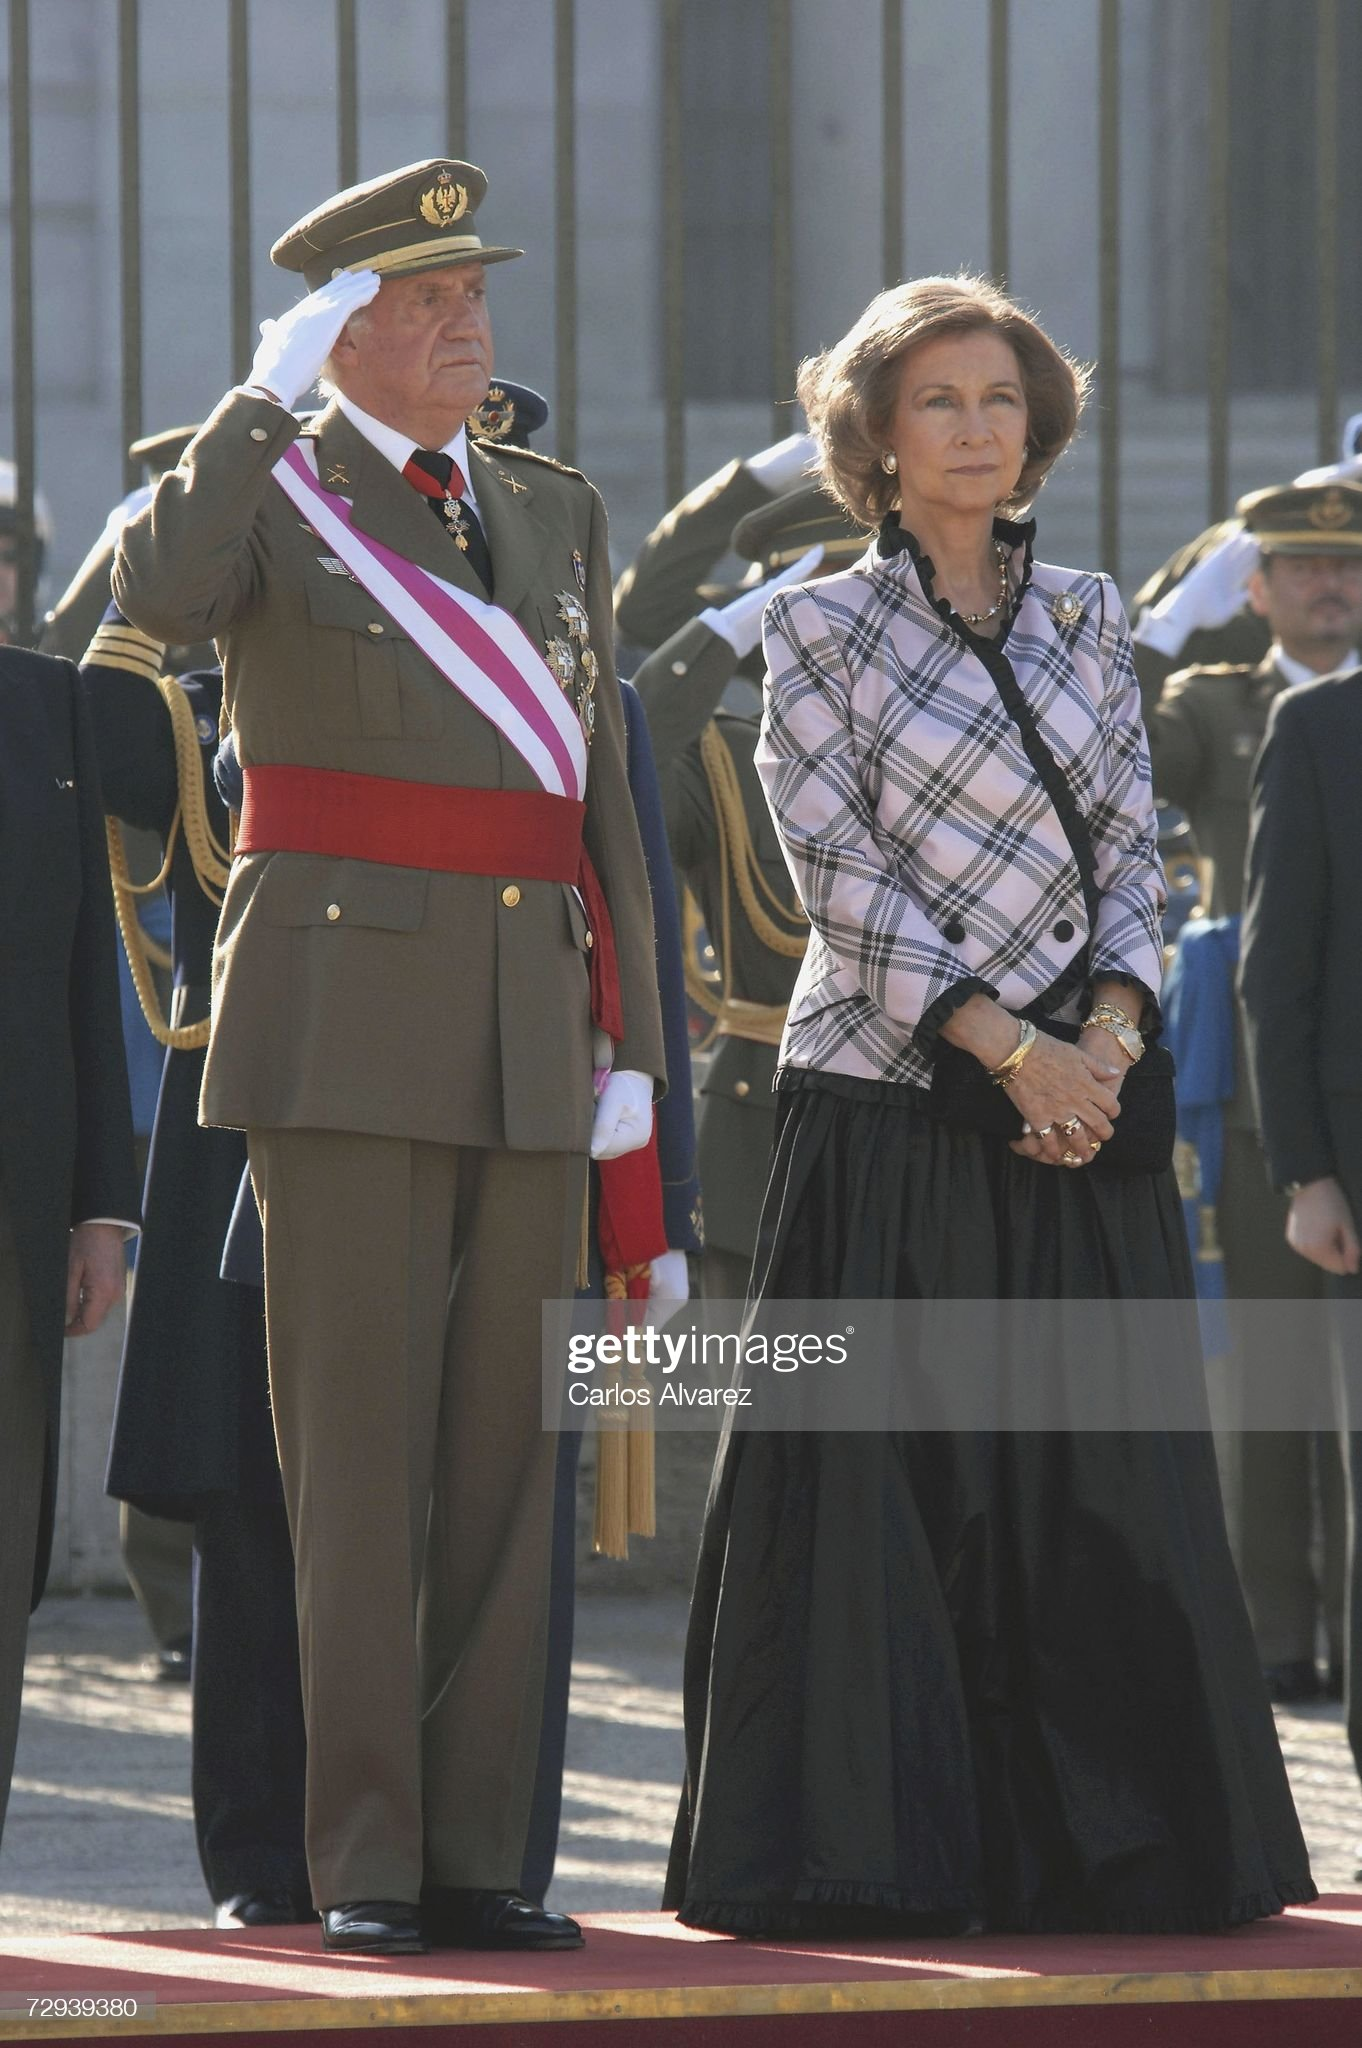 Spanish Royals Attend Pascua Militar Day : News Photo